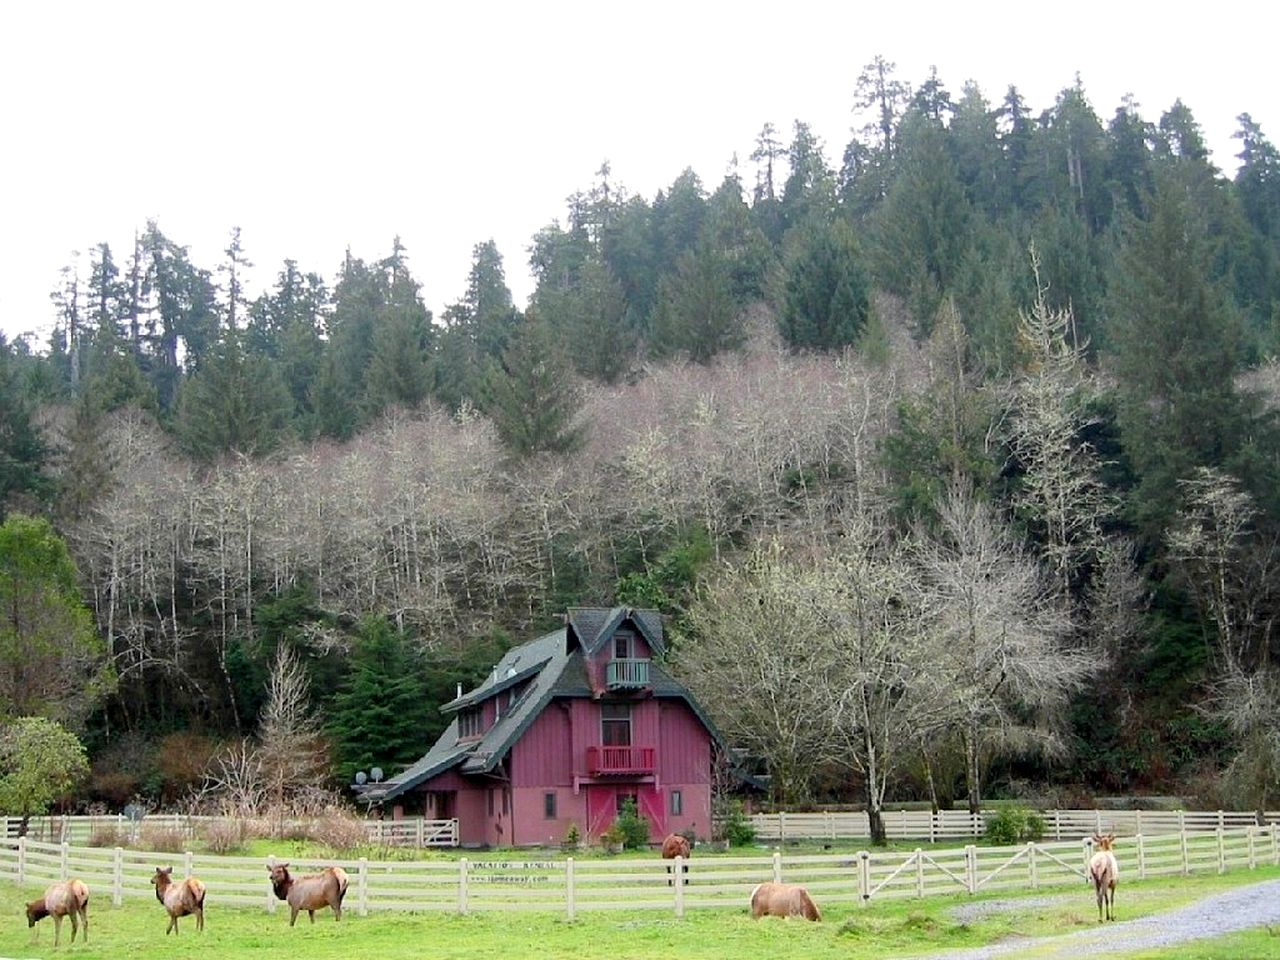 Unique farmhouse rental near in the Redwoods, CA